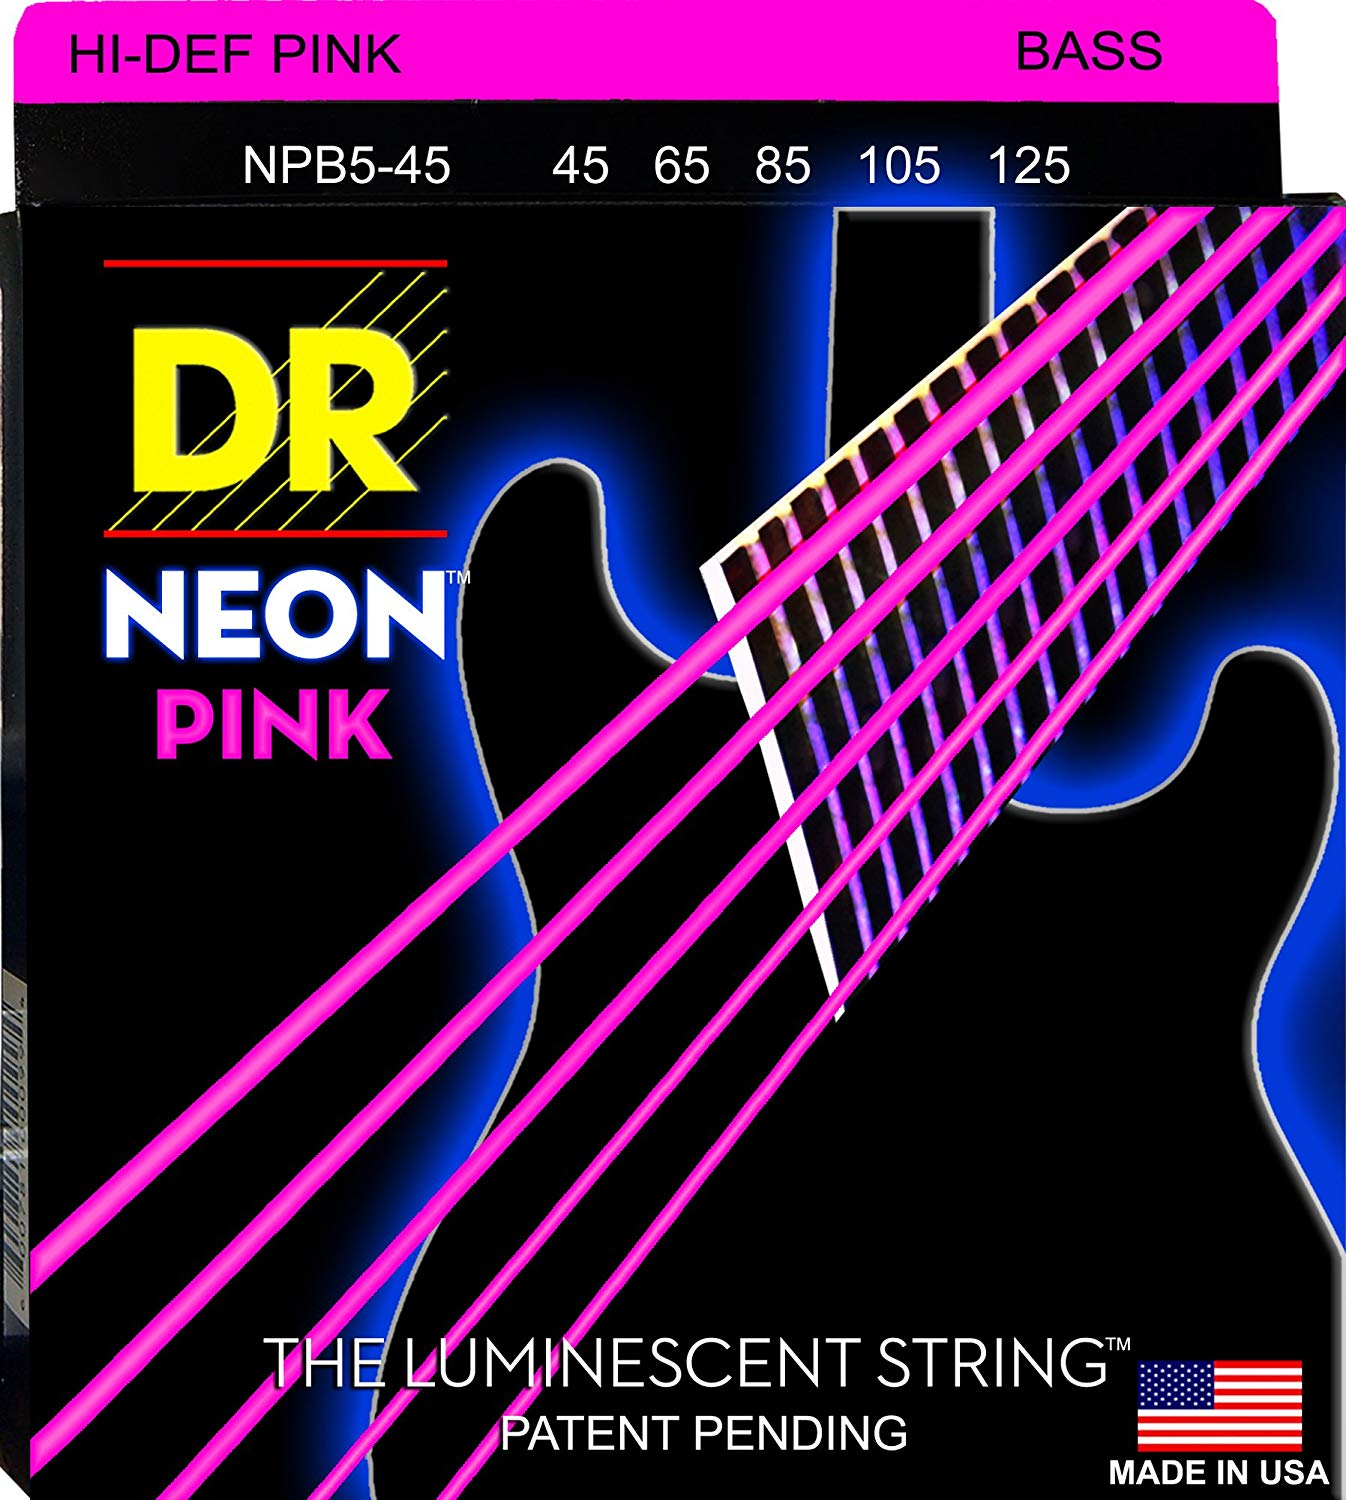 DR NPB5-45 NEON™ Hi-Def© Pink Coated Bass: 45, 65, 85, 105, 125